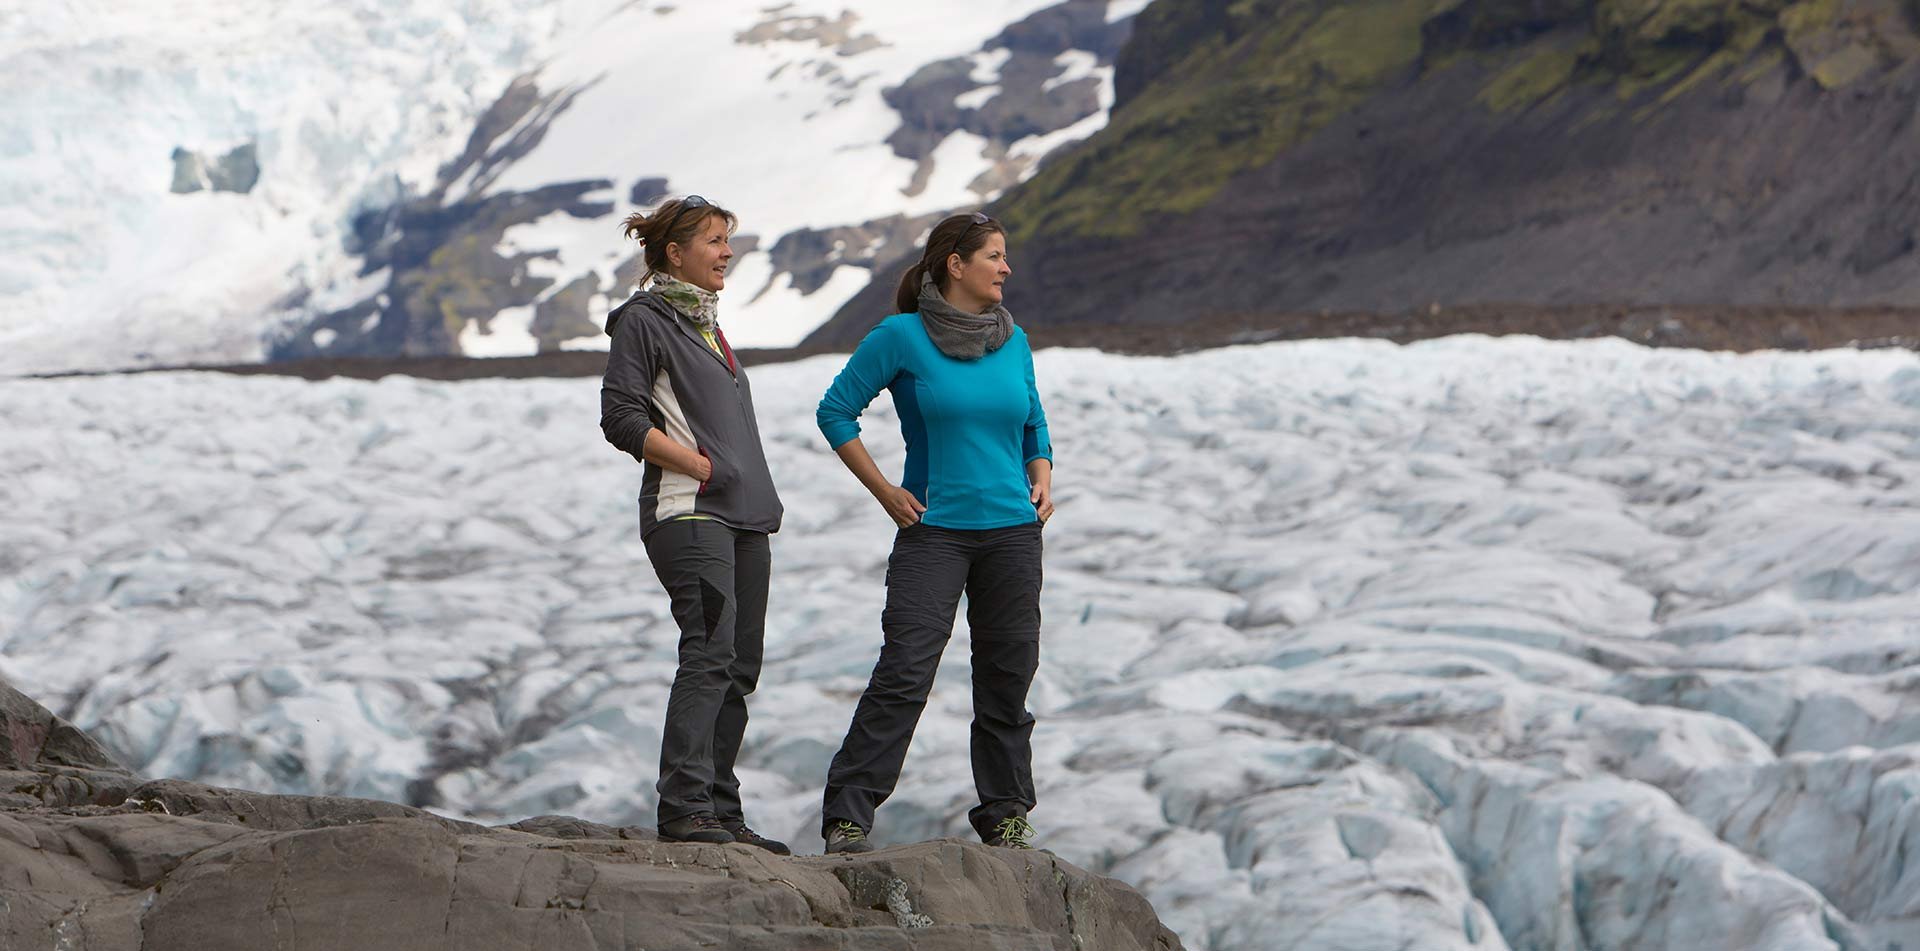 Europe Iceland tourist women standing near glacier ice flow overlooking icy landscape - luxury vacation destinations